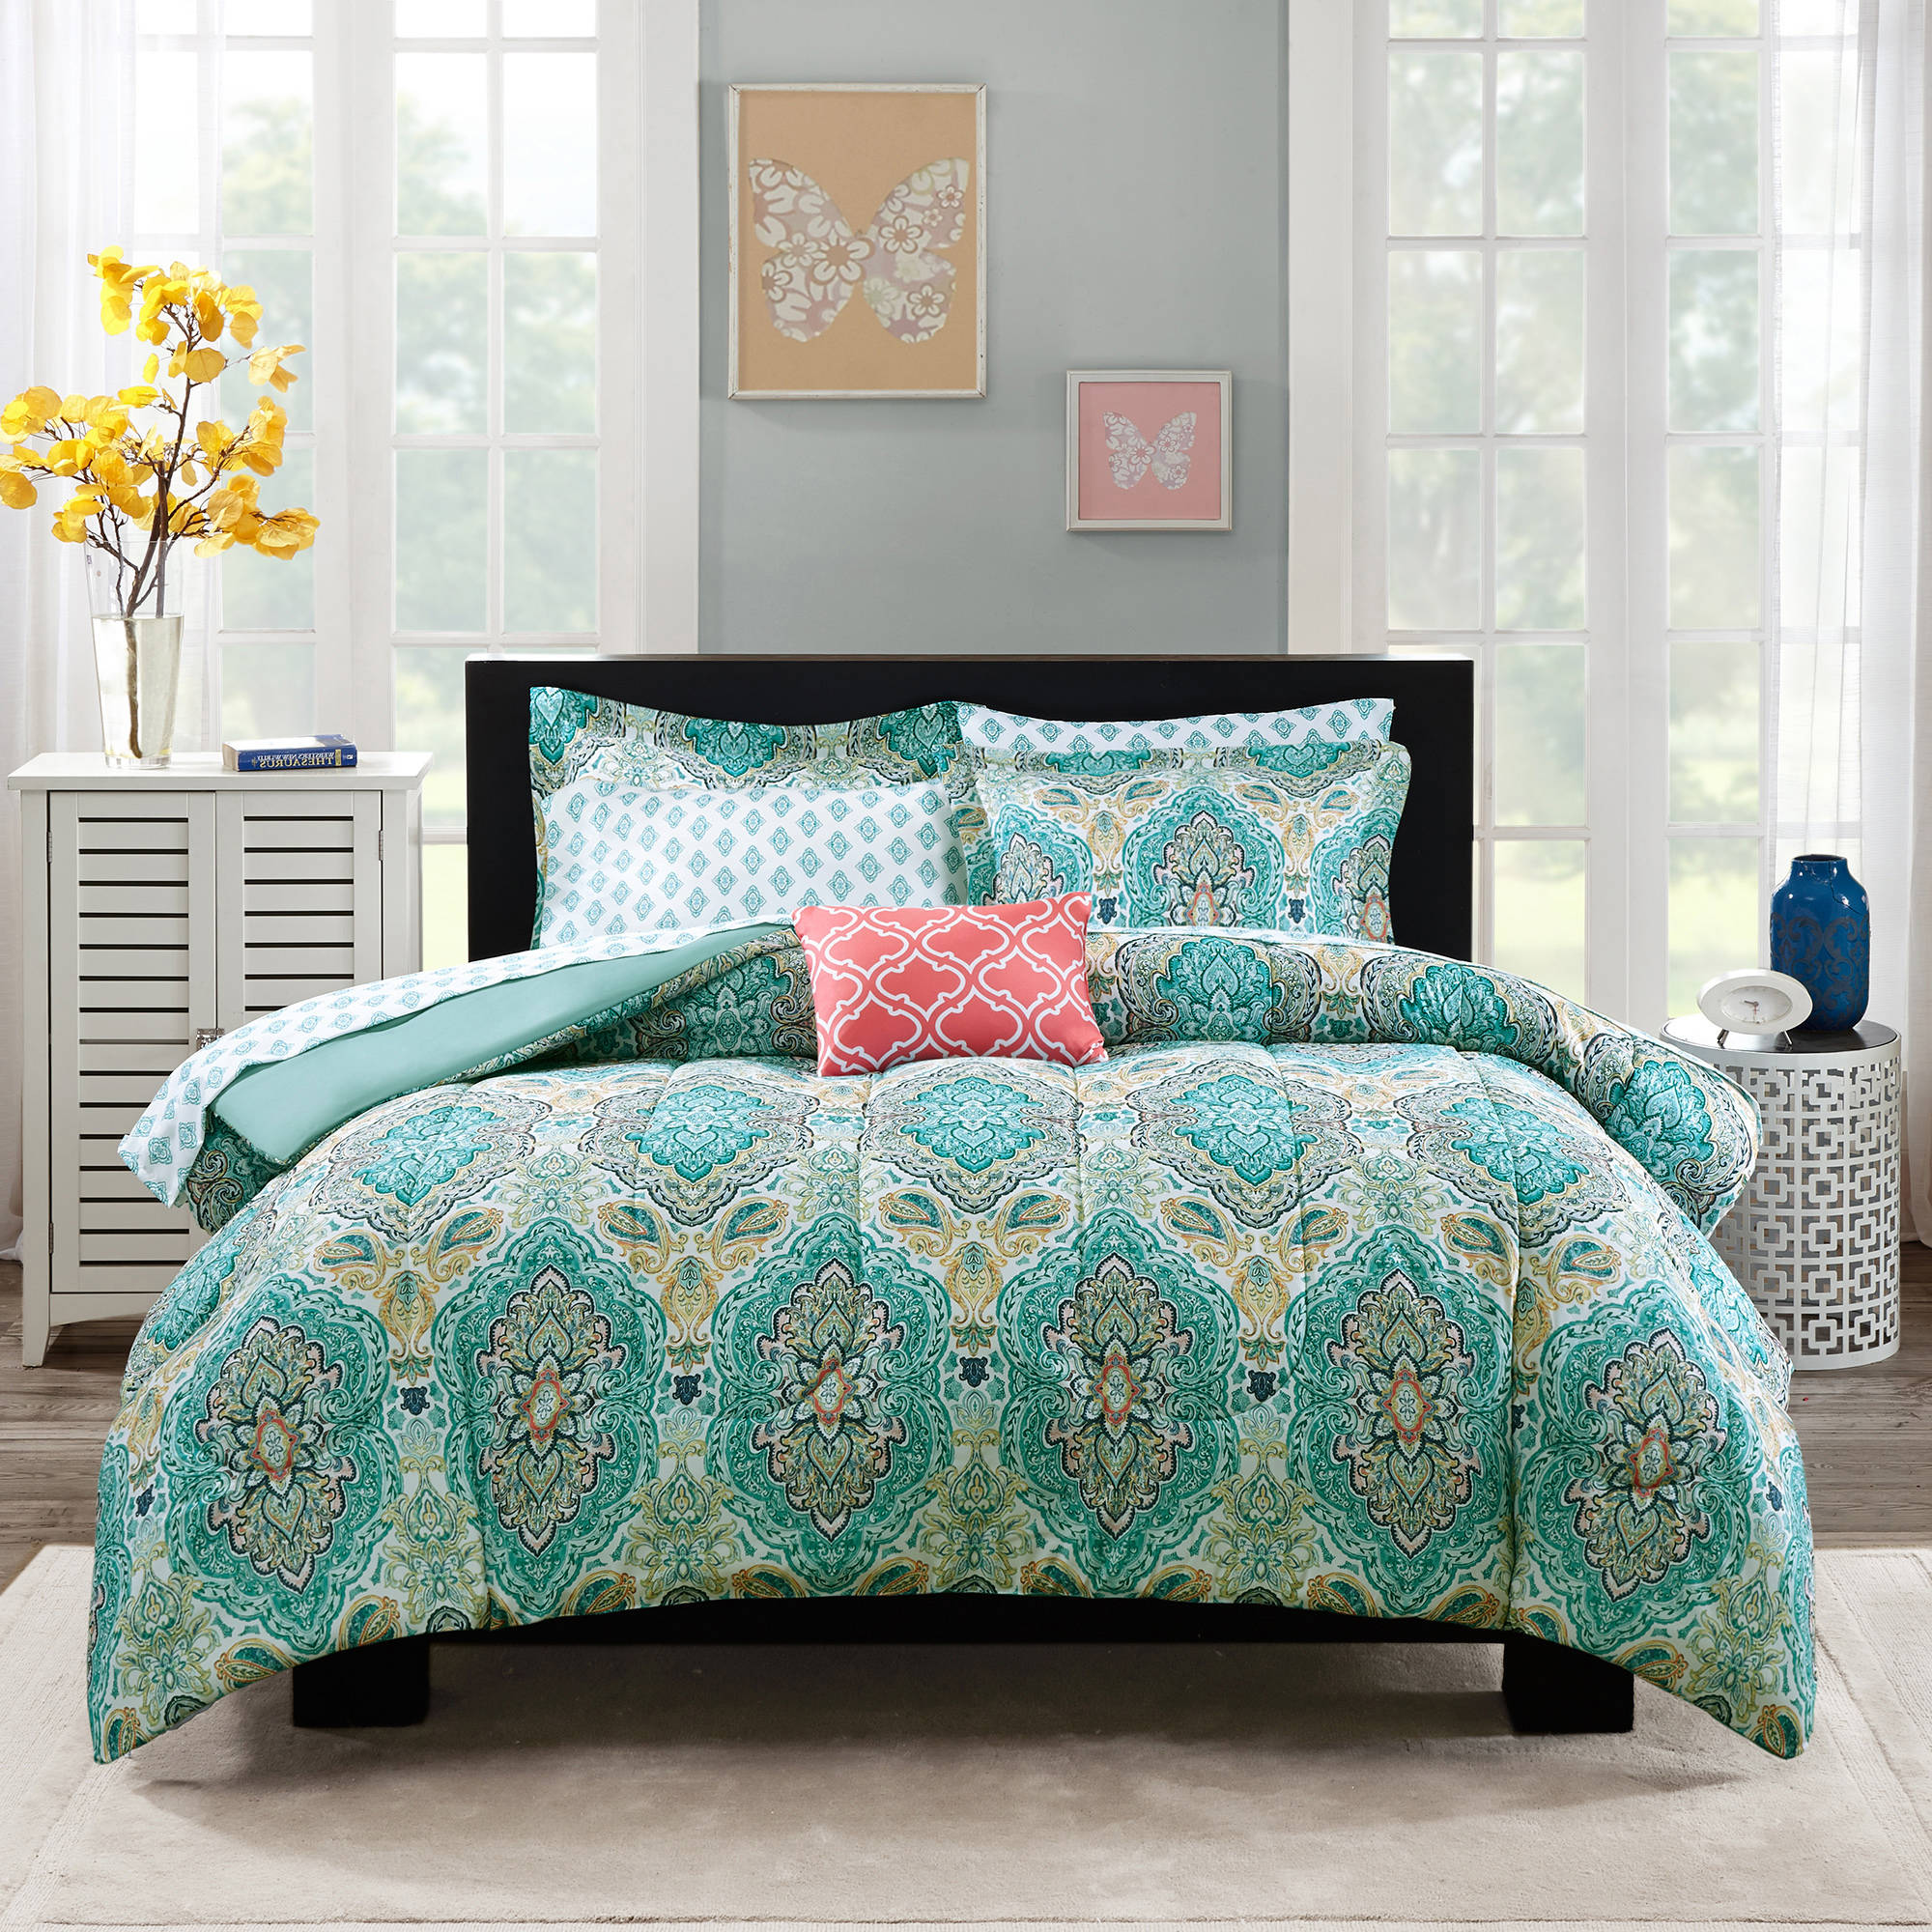 Cool comforters for teens with unique sidetable